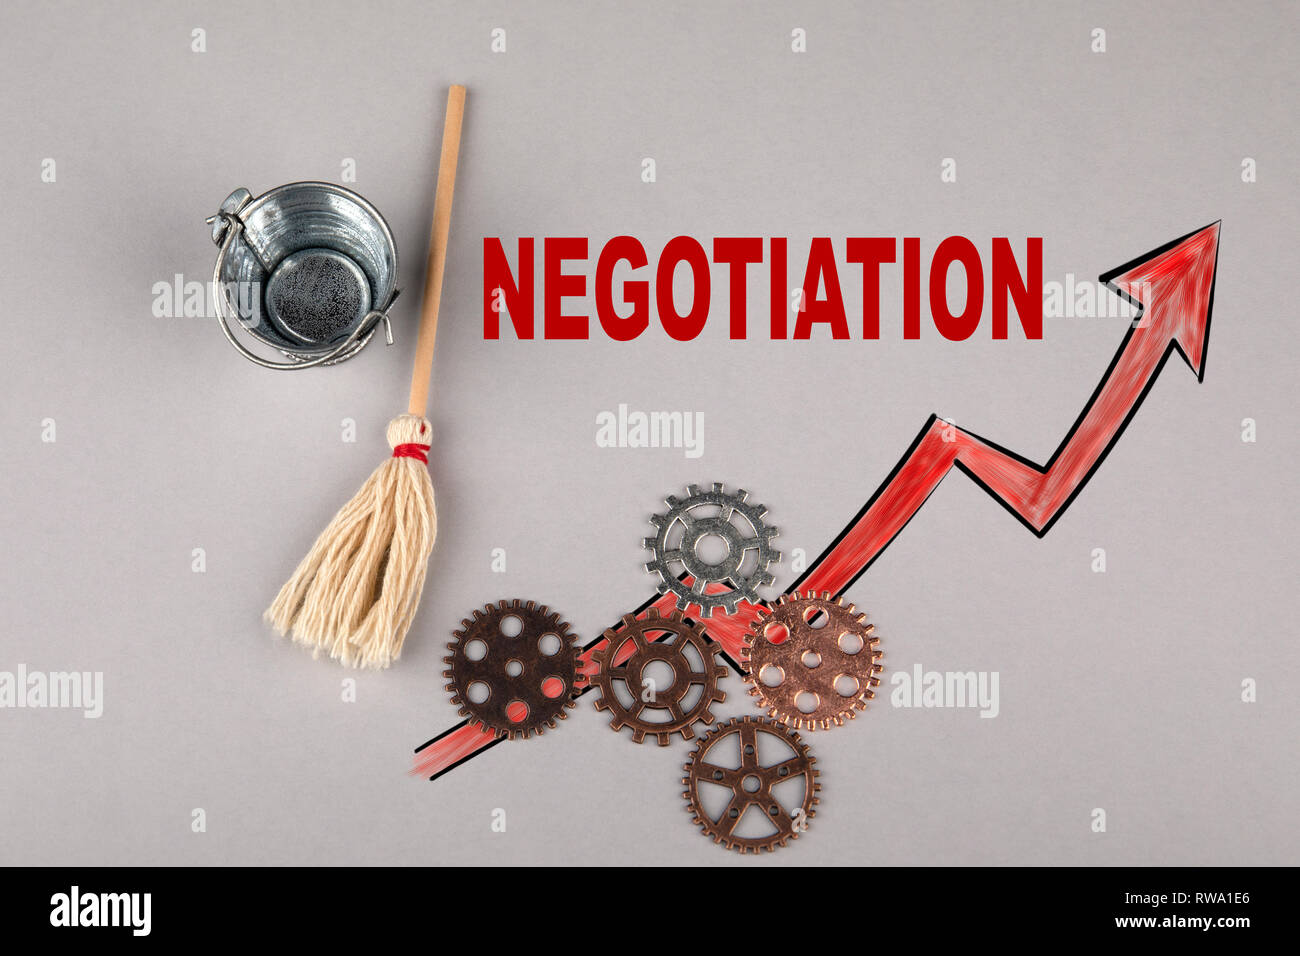 Negotiation concept. Gears, bucket with a broom - Stock Image